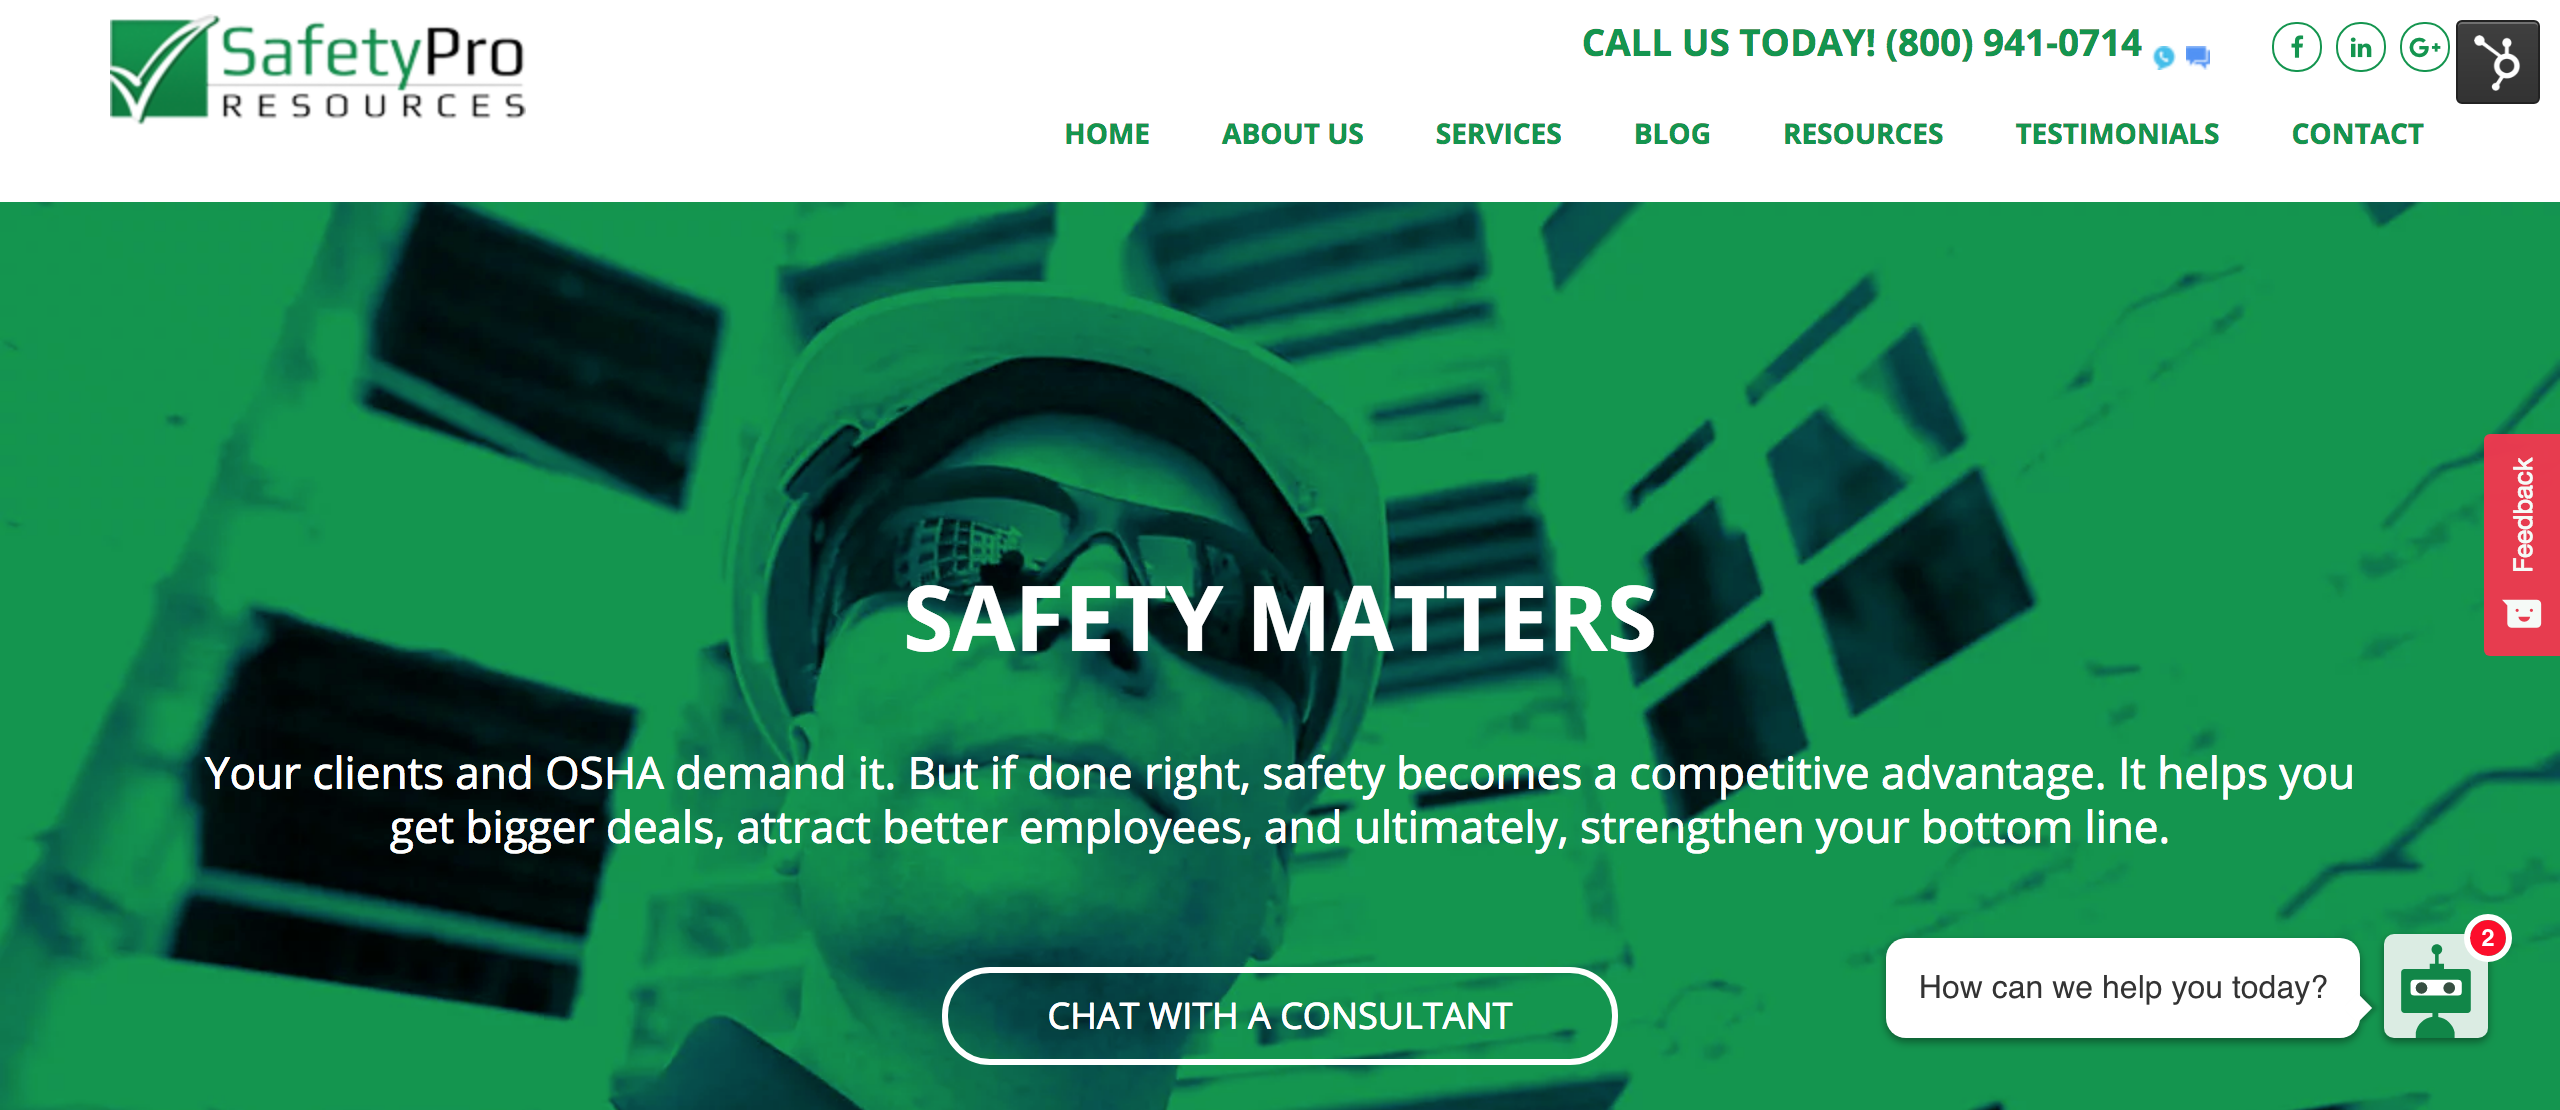 New Safety Pro home